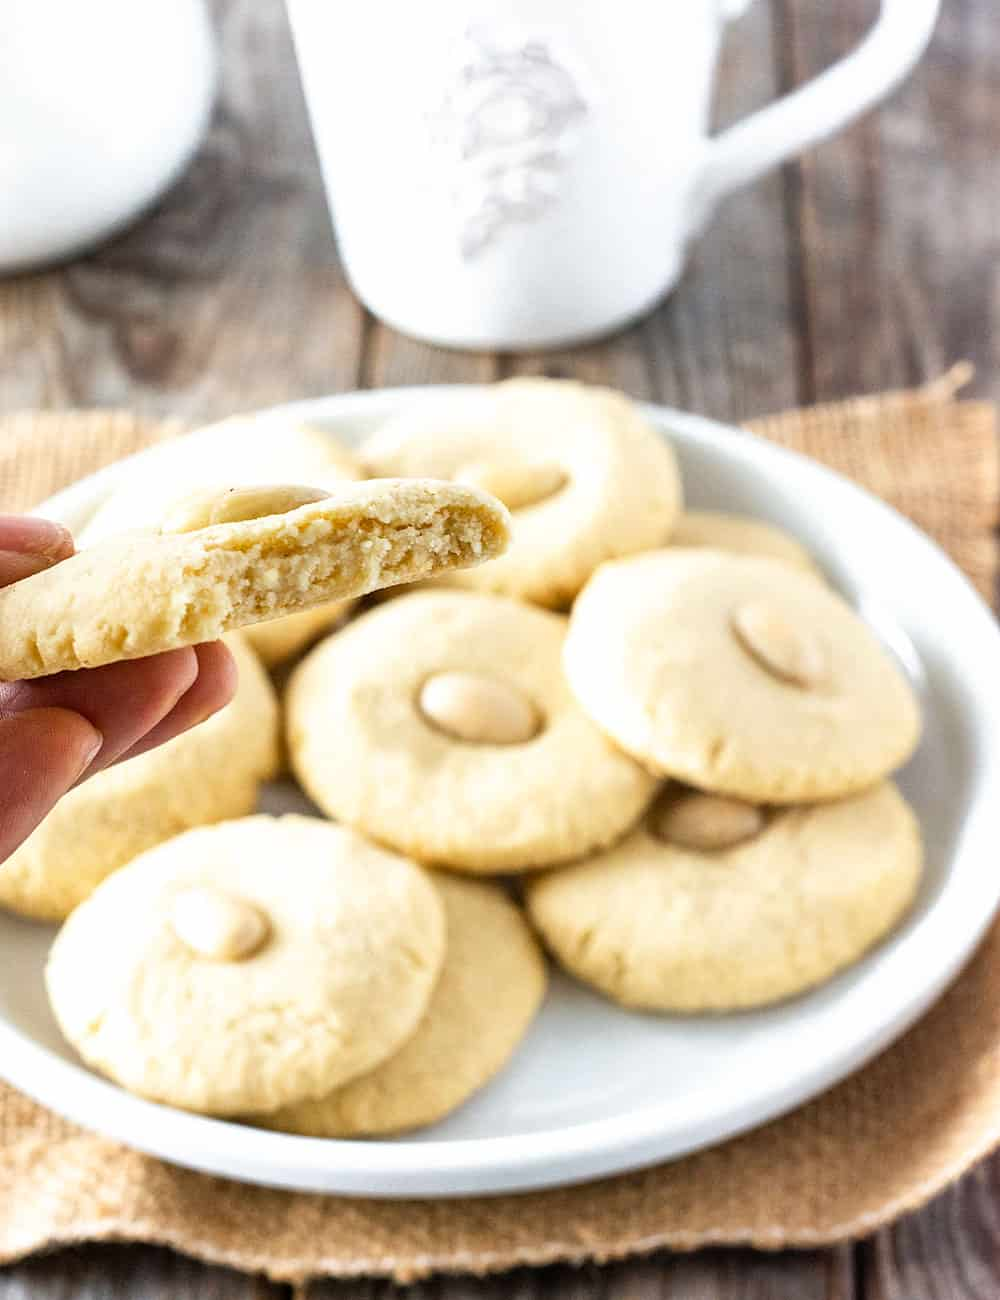 Chinese almond cookies on a white plate with my hand holding a half a cookie